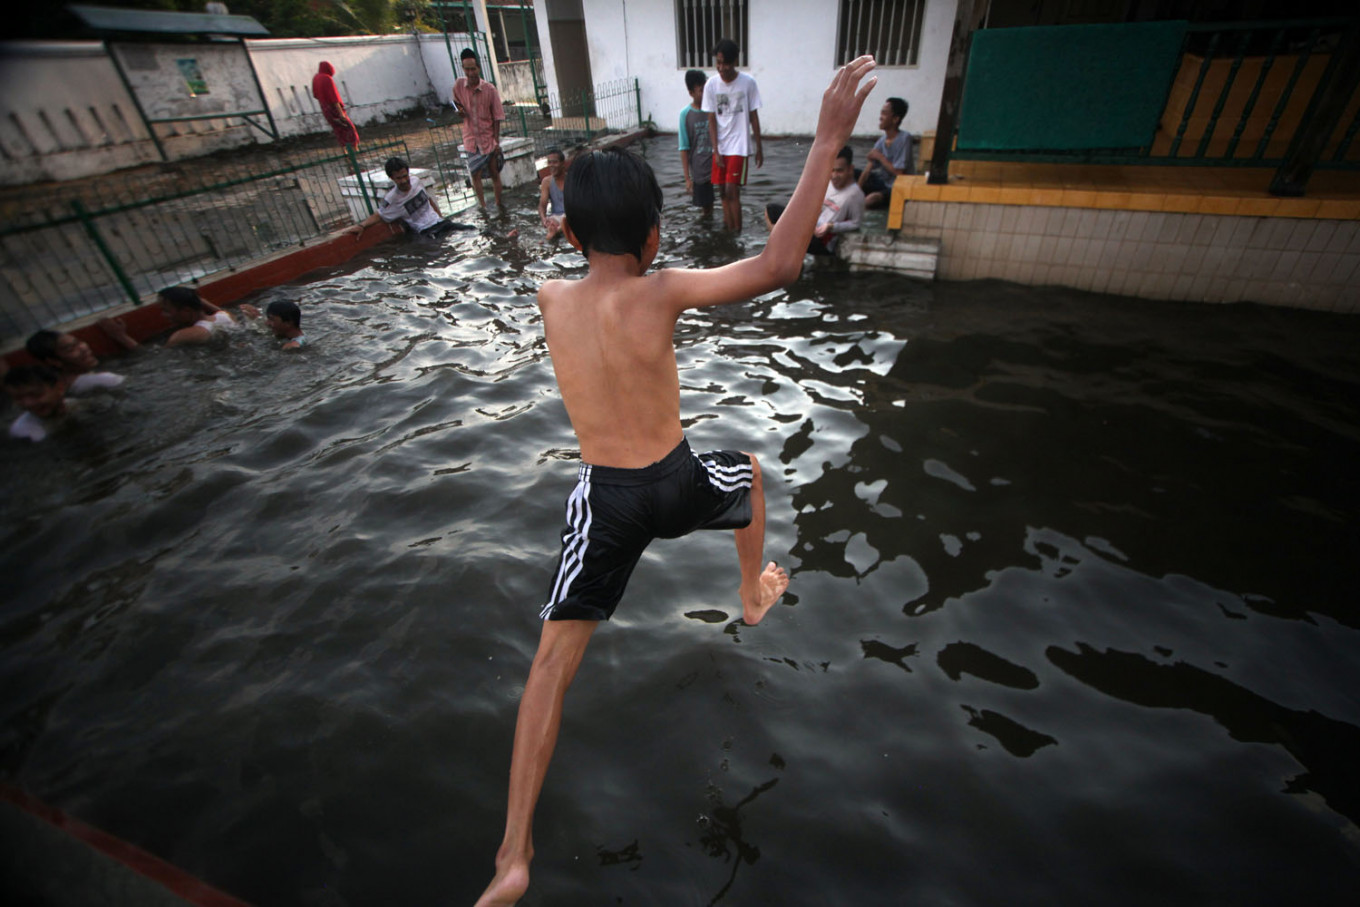 A boy jumps into the pool at Pathok Negoro Mosque in Sleman regency, Yogyakarta. JP/Boy T Harjanto